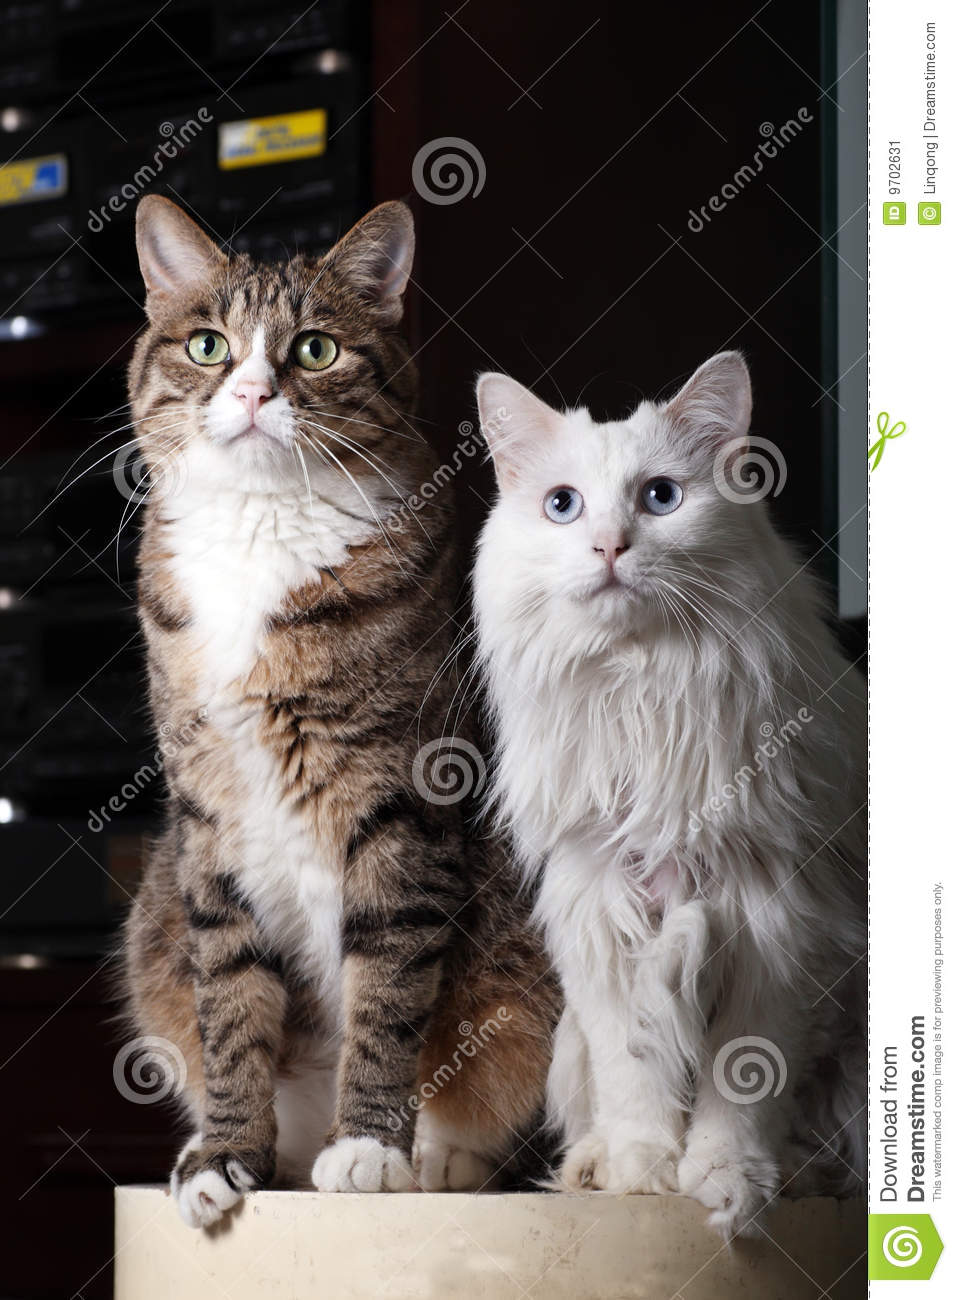 Cat Couples Stock Image - Image: 9702631